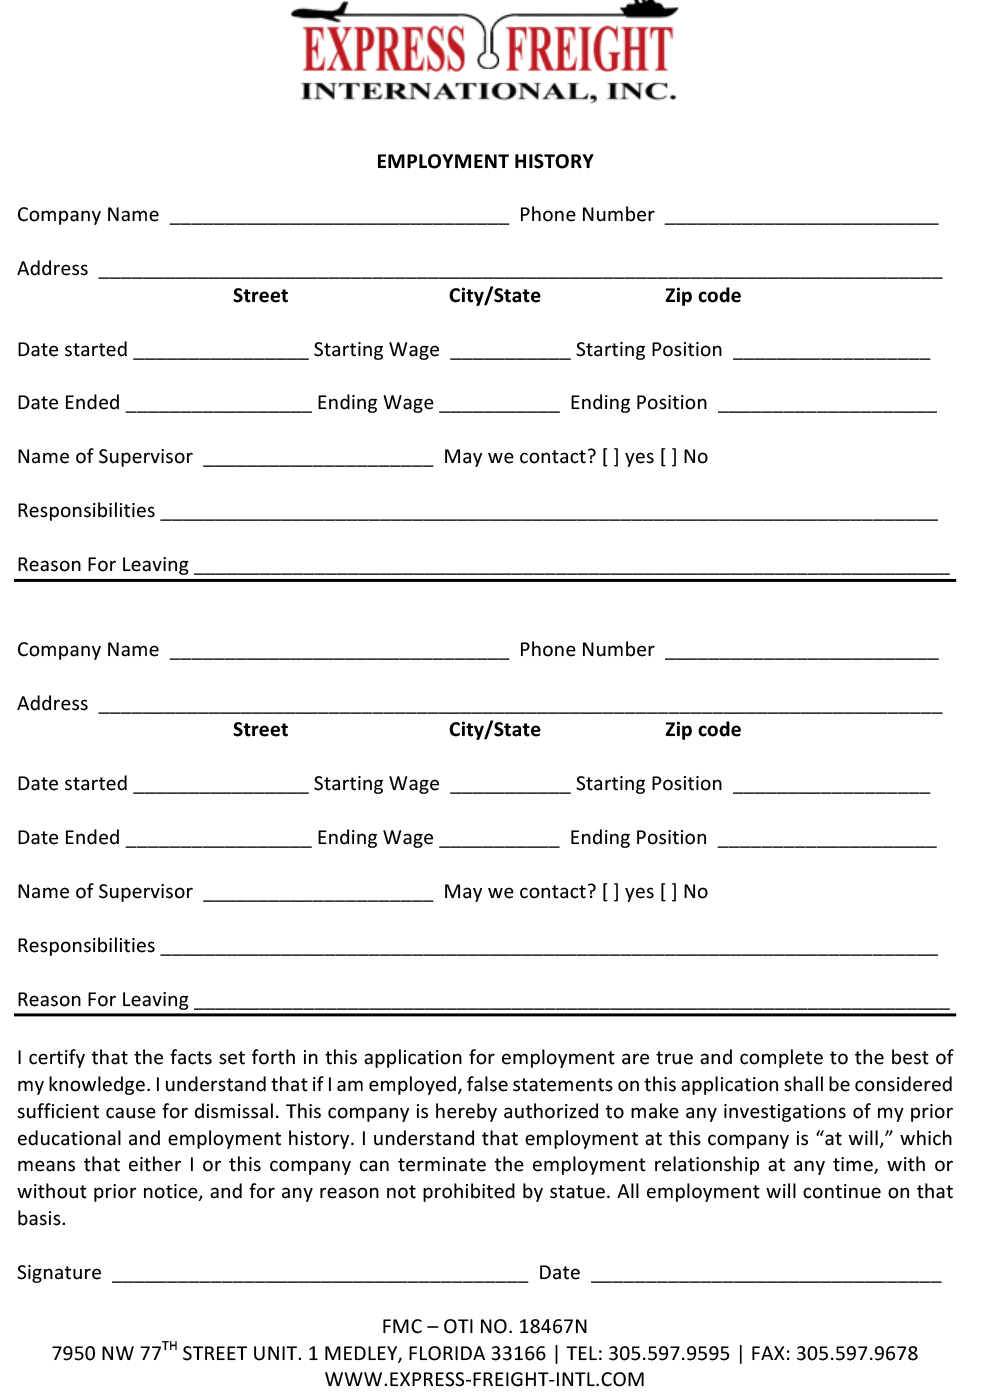 Express Freight International Employment Application Page 2